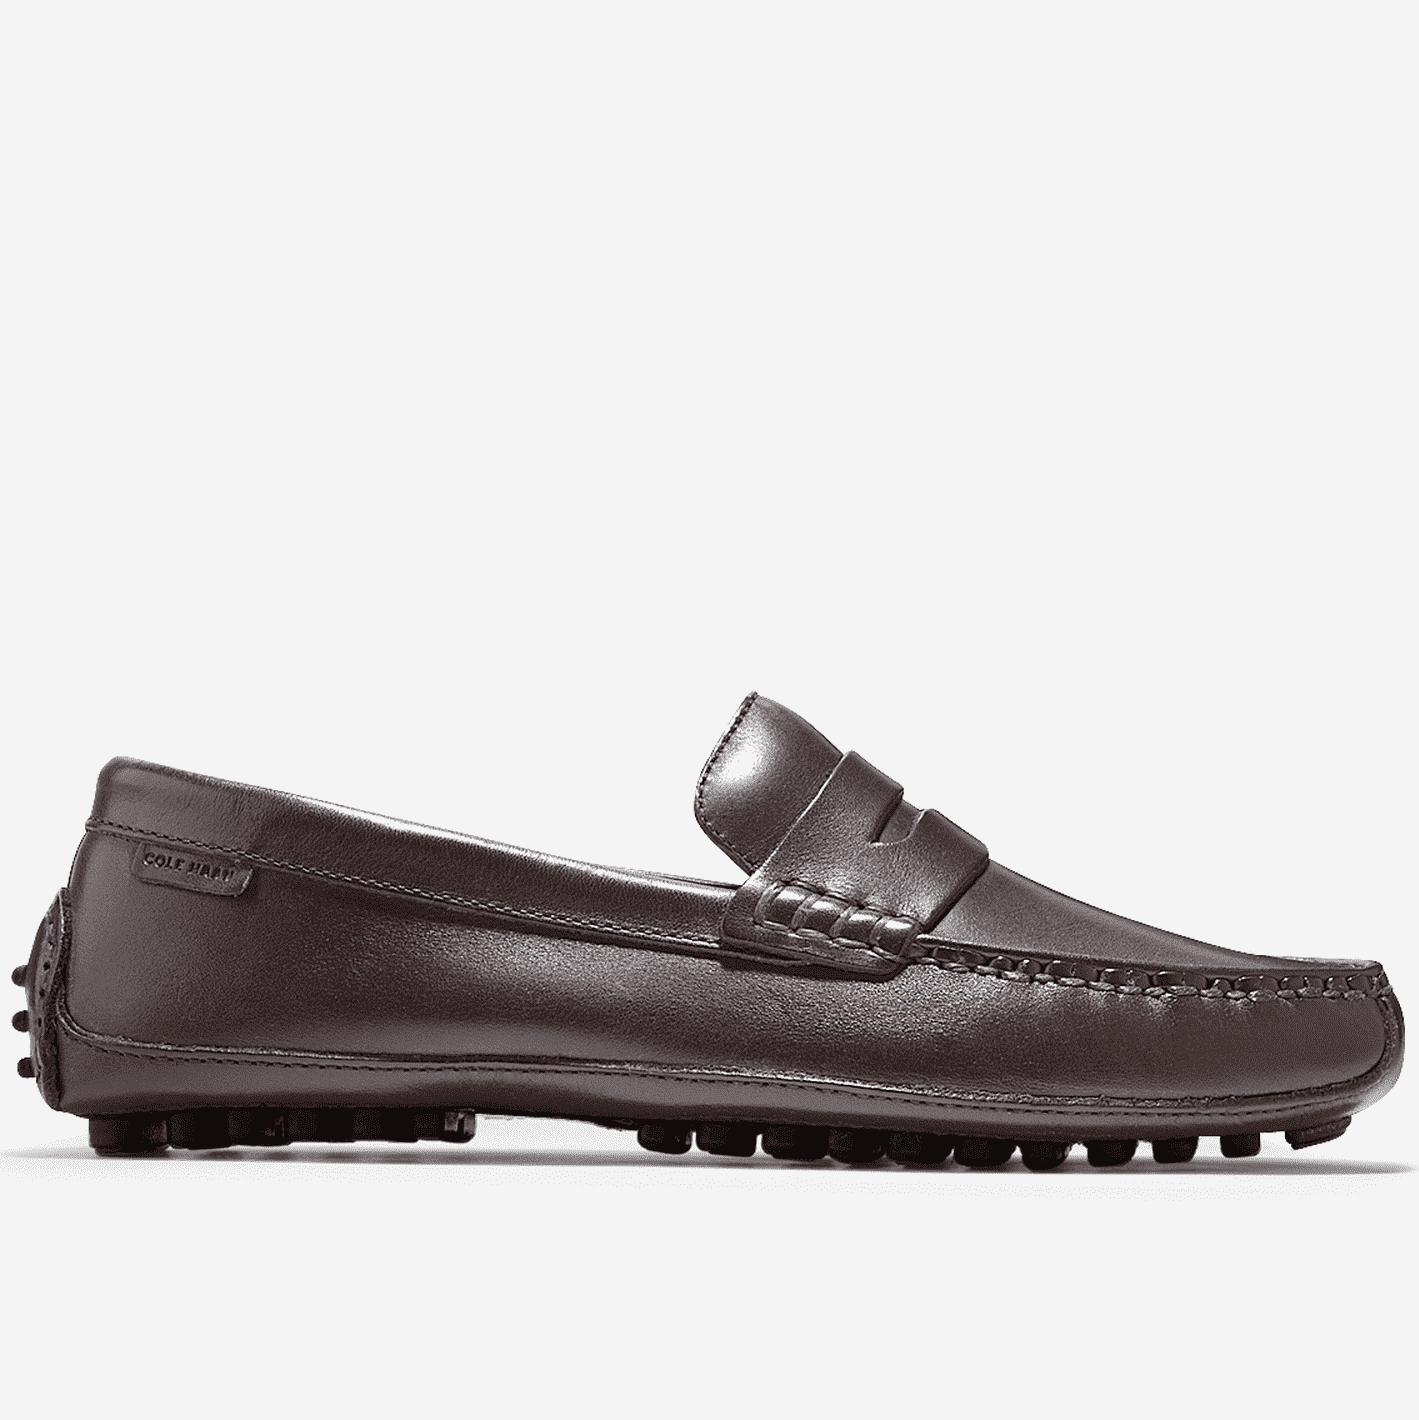 Men's Footwear - Grant Canoe Penny Loafer In T Moro Dark Brown By Cole Haan